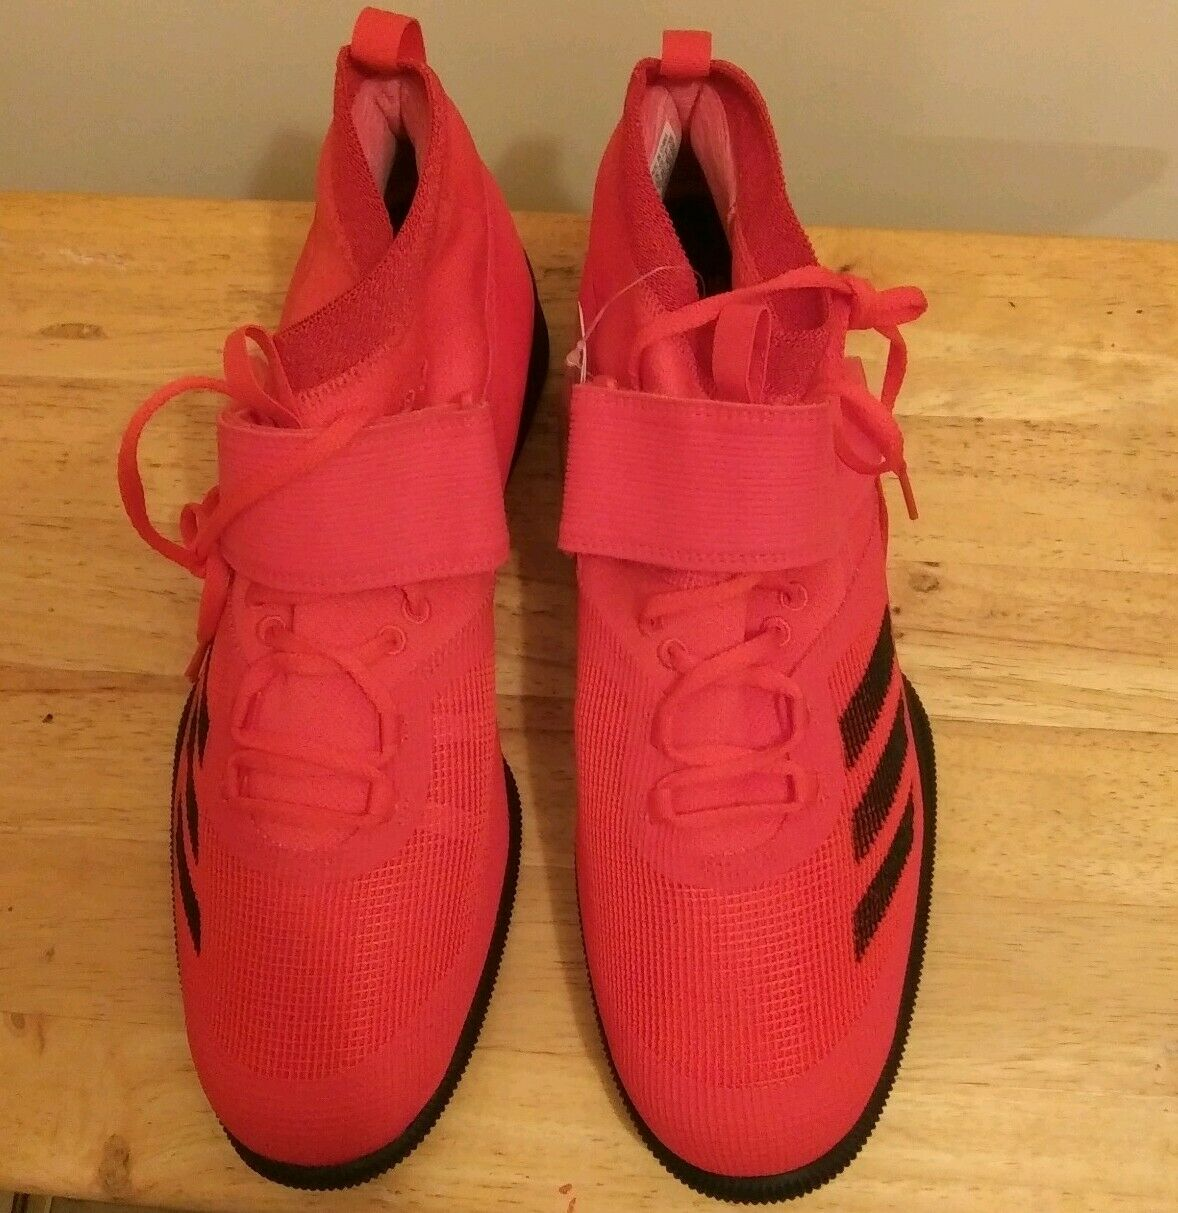 Men's Red Adidas Size 14 Brand New